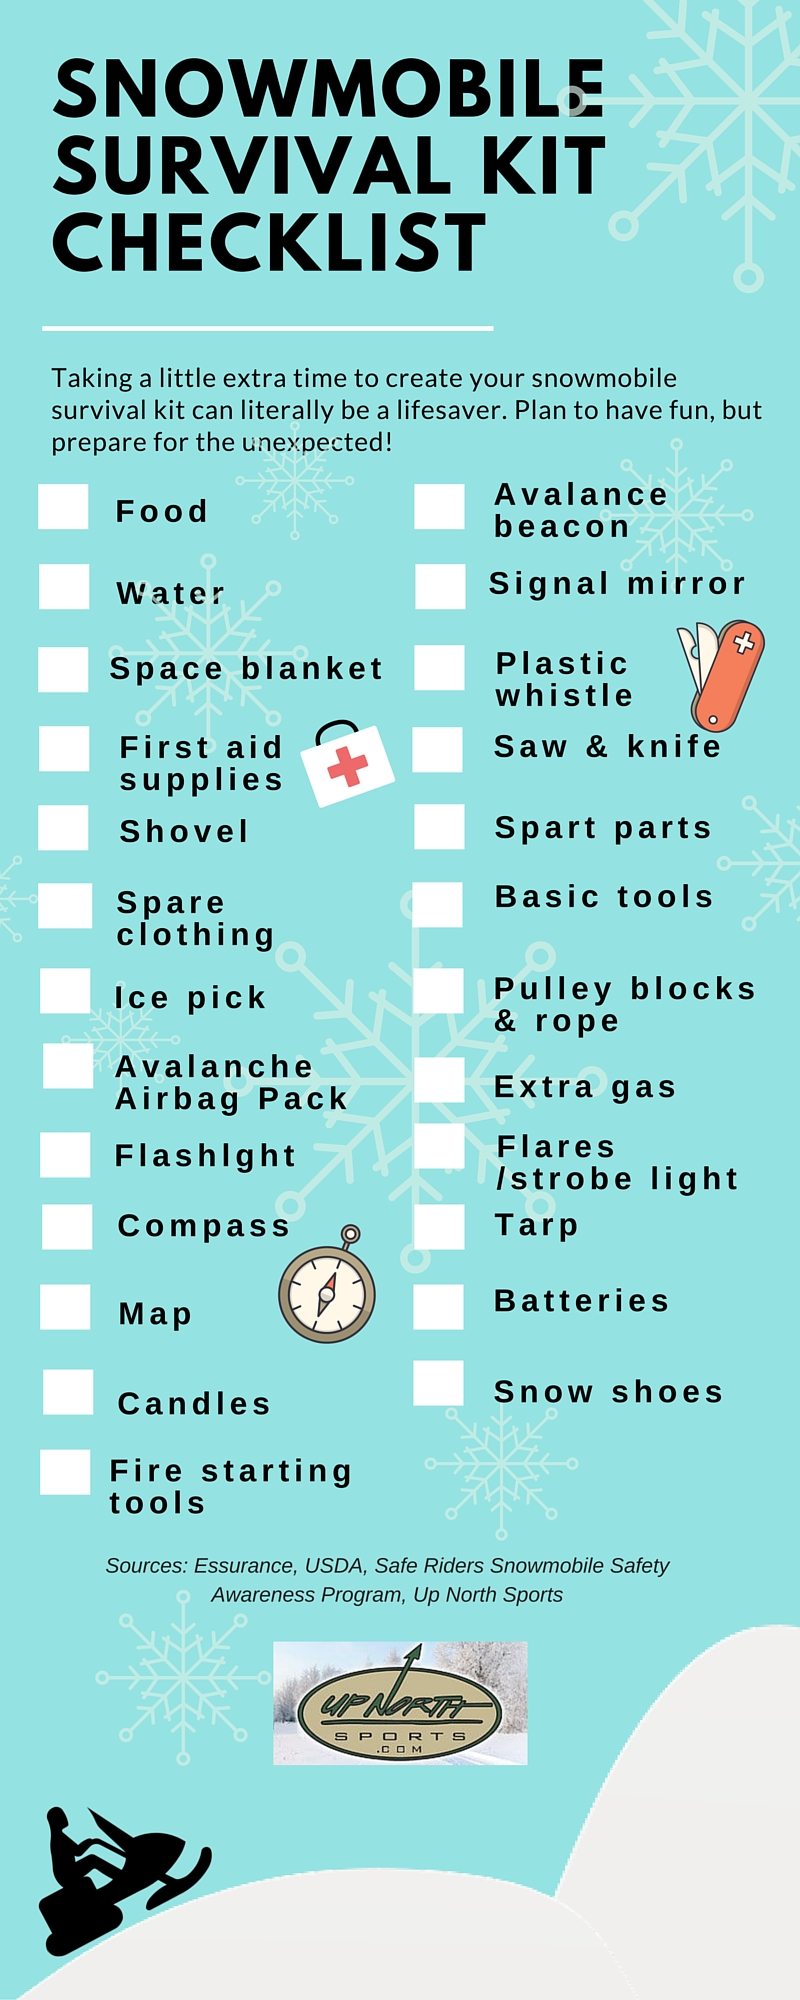 Snowmobile Survival Checklist